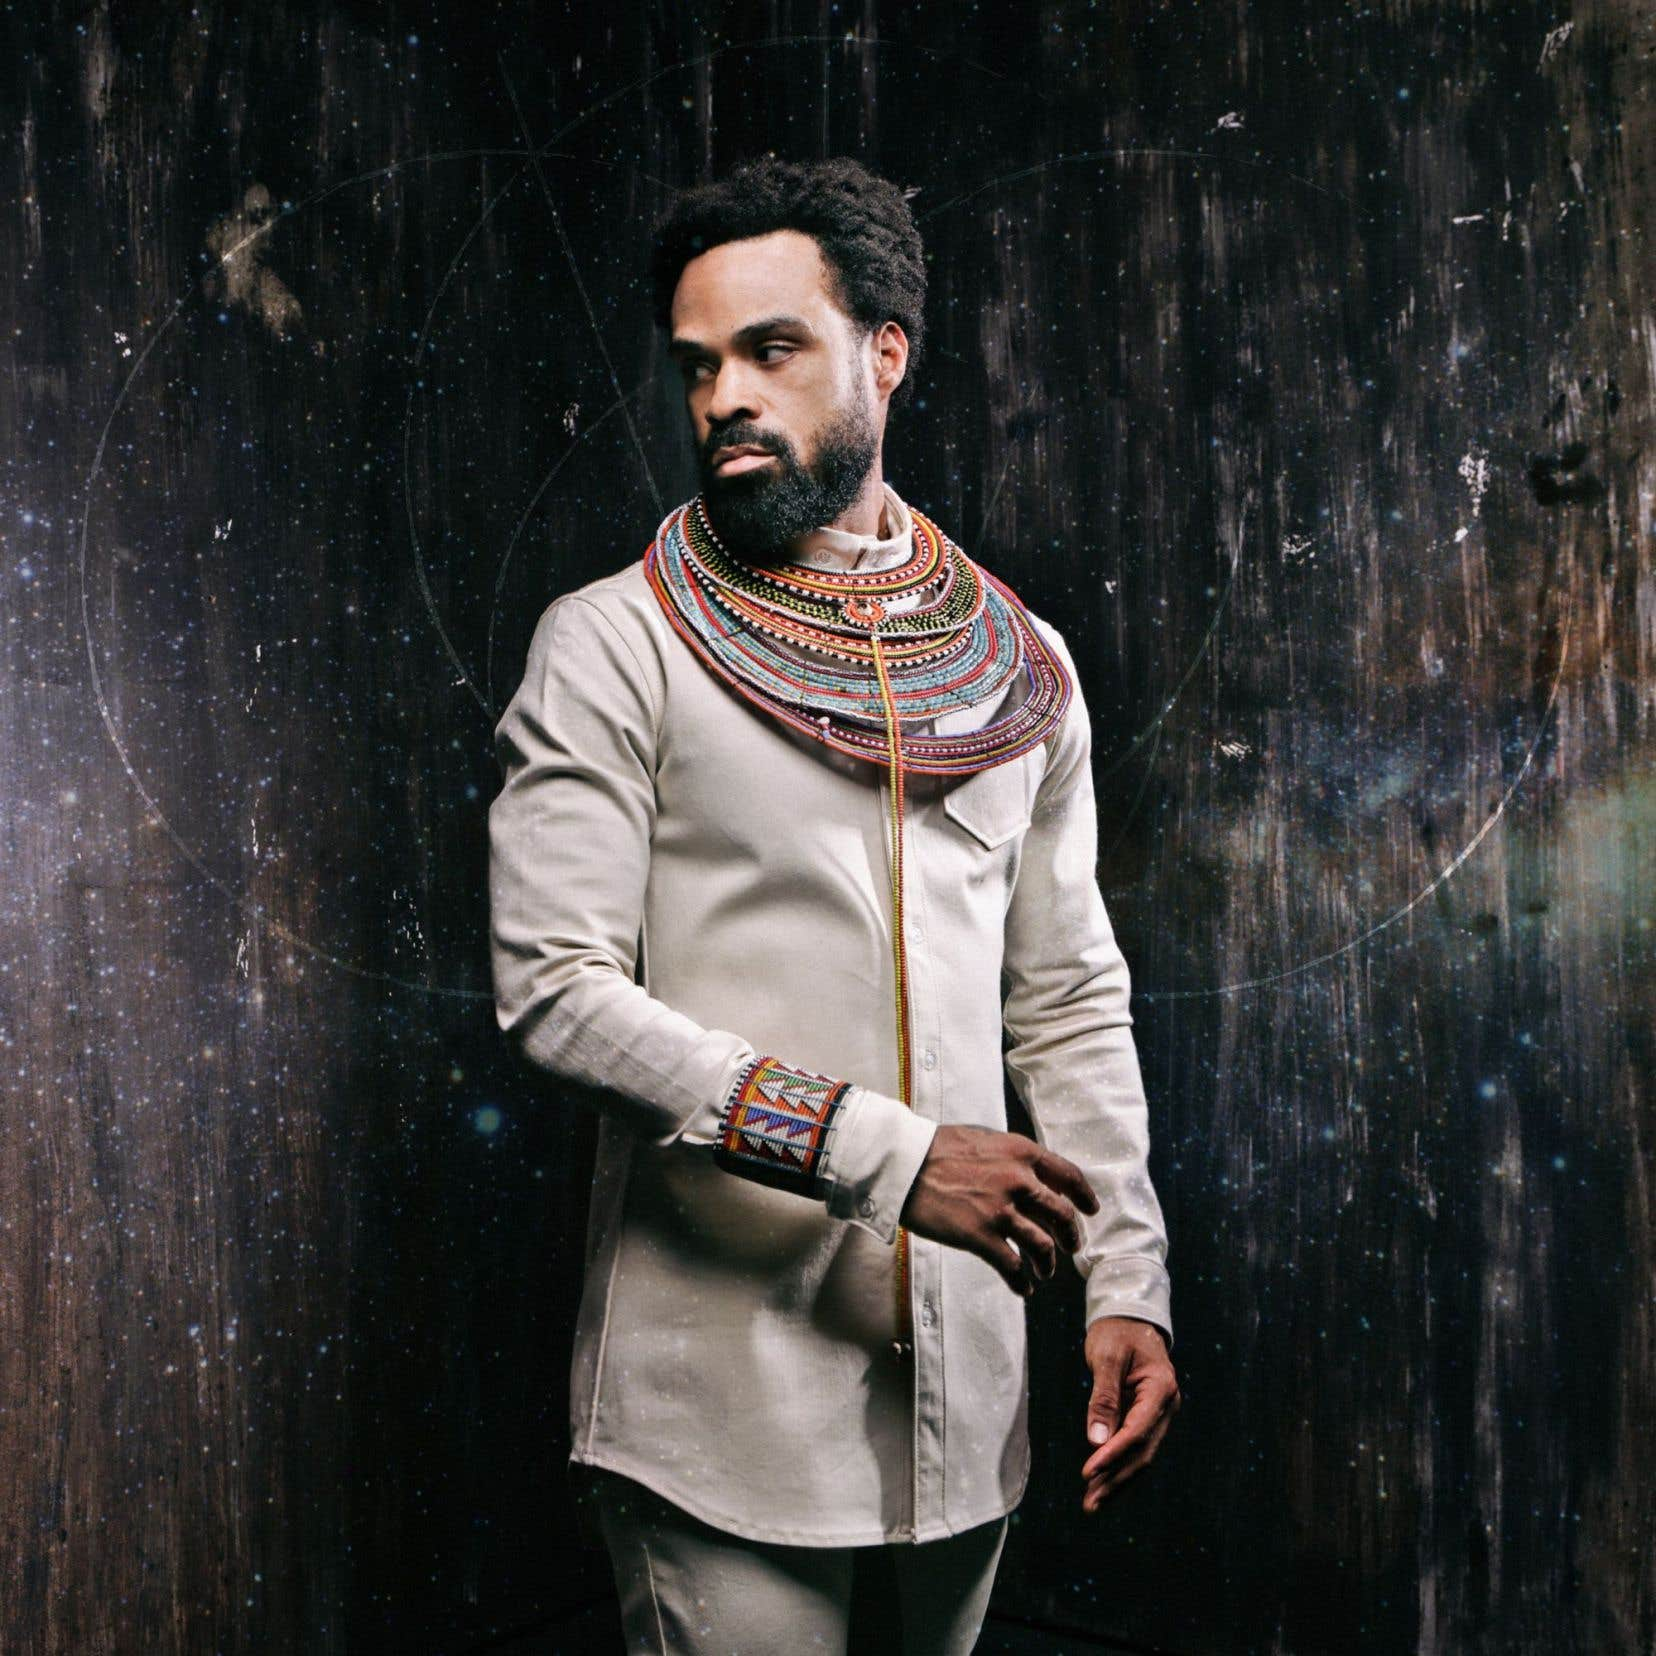 Bilal Sayeed Oliver présentera un tour de chant paré des couleurs jazz-funk brutes de son plus récent album, «In Another Life».